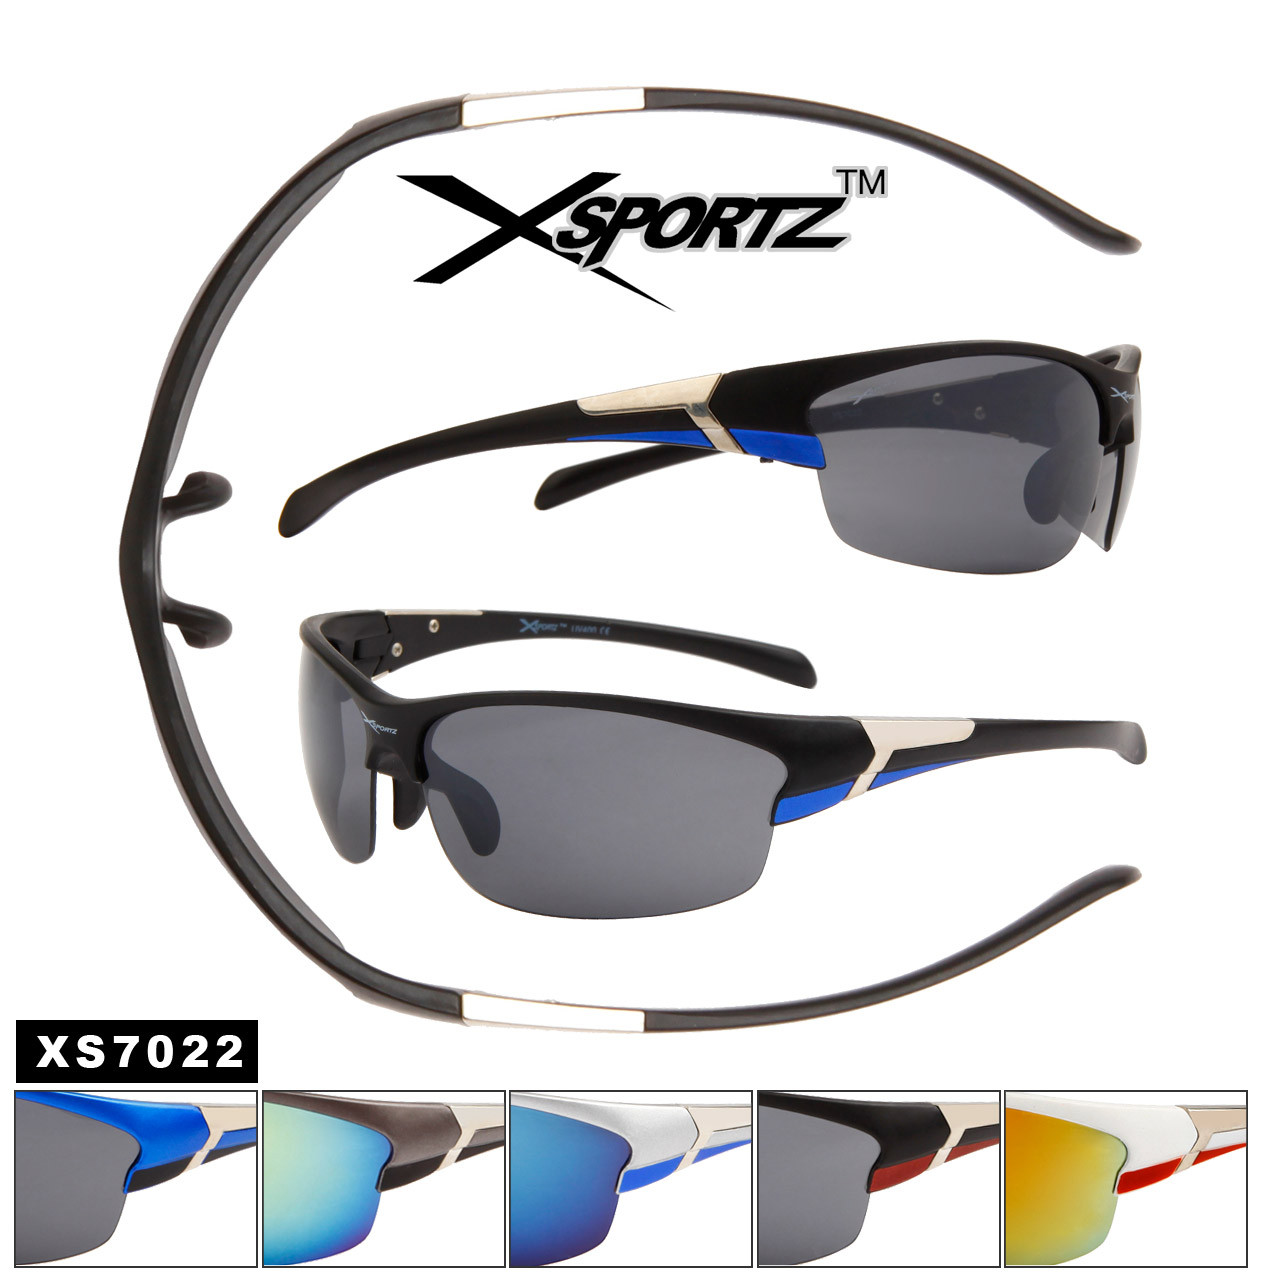 Xsportz™ Wholesale Sport Sunglasses XS7022